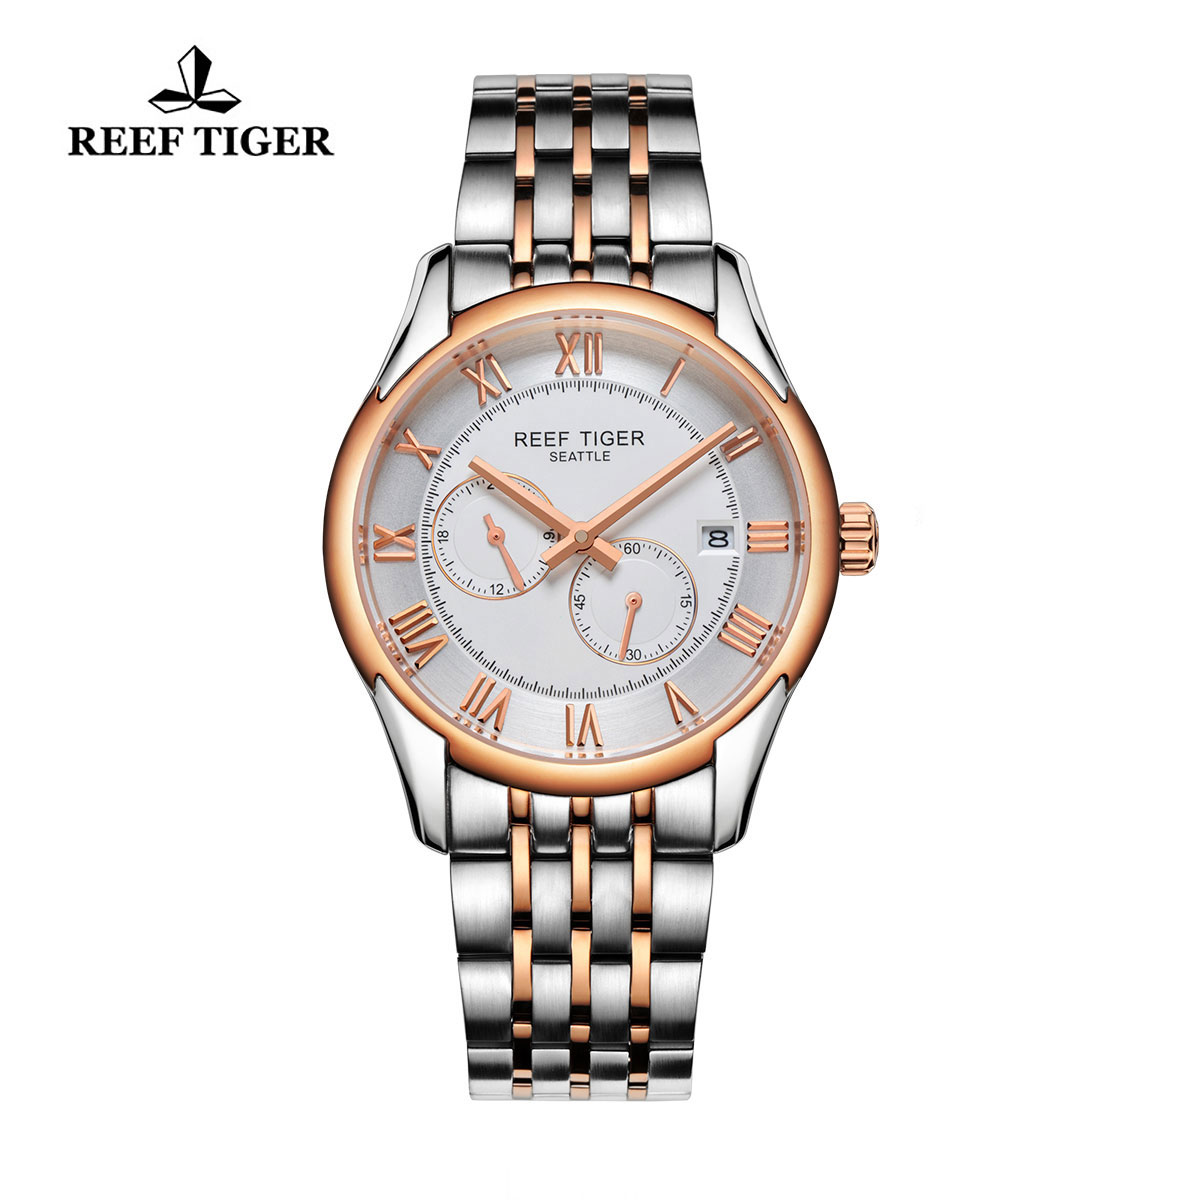 Reef Tiger Business Watch Rose Gold/Steel White Dial Automatic Watch RGA165-TWT